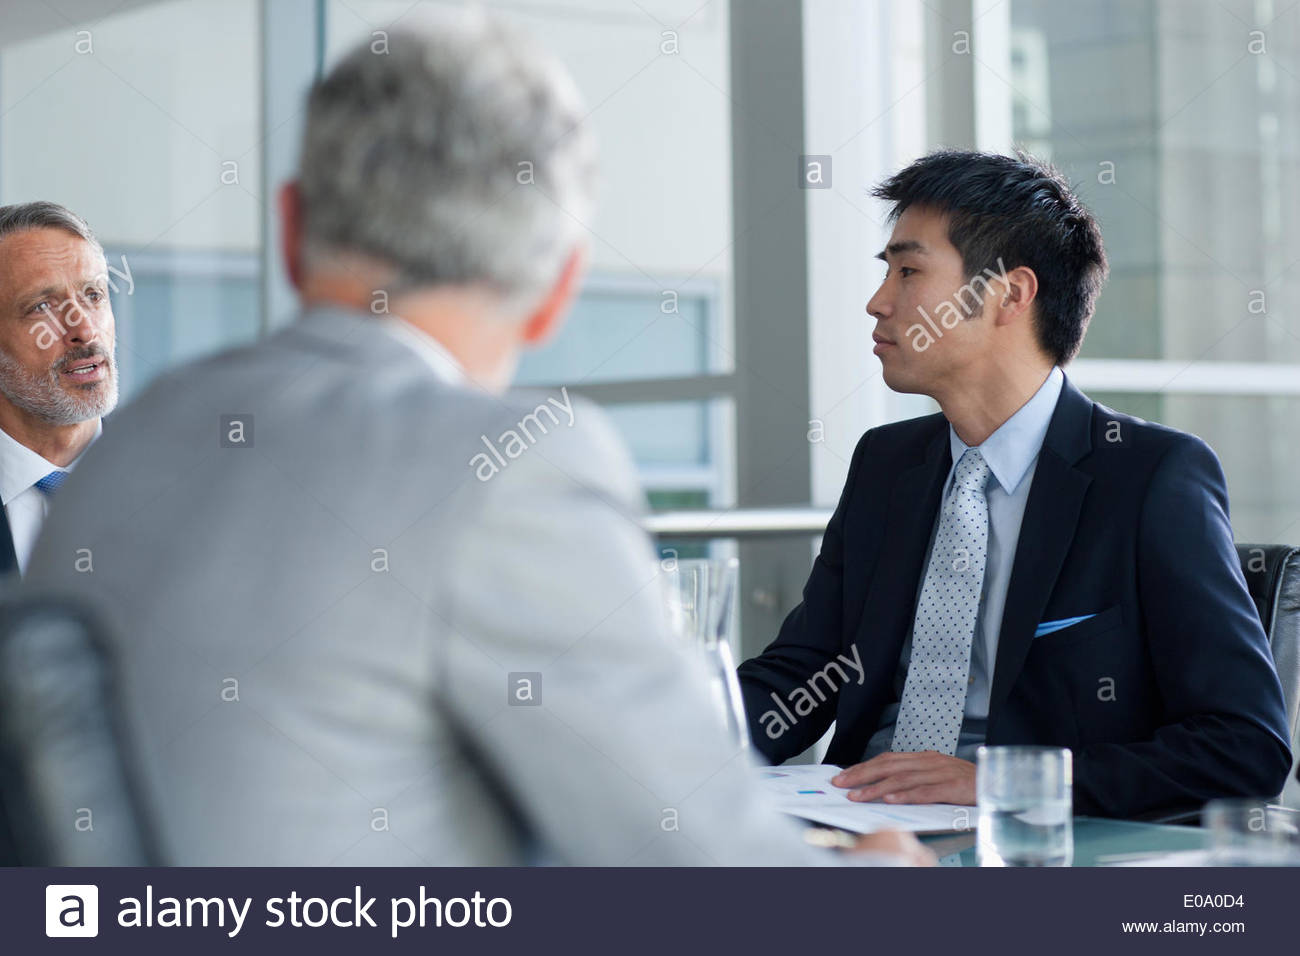 Businessman with co-workers Photo Stock